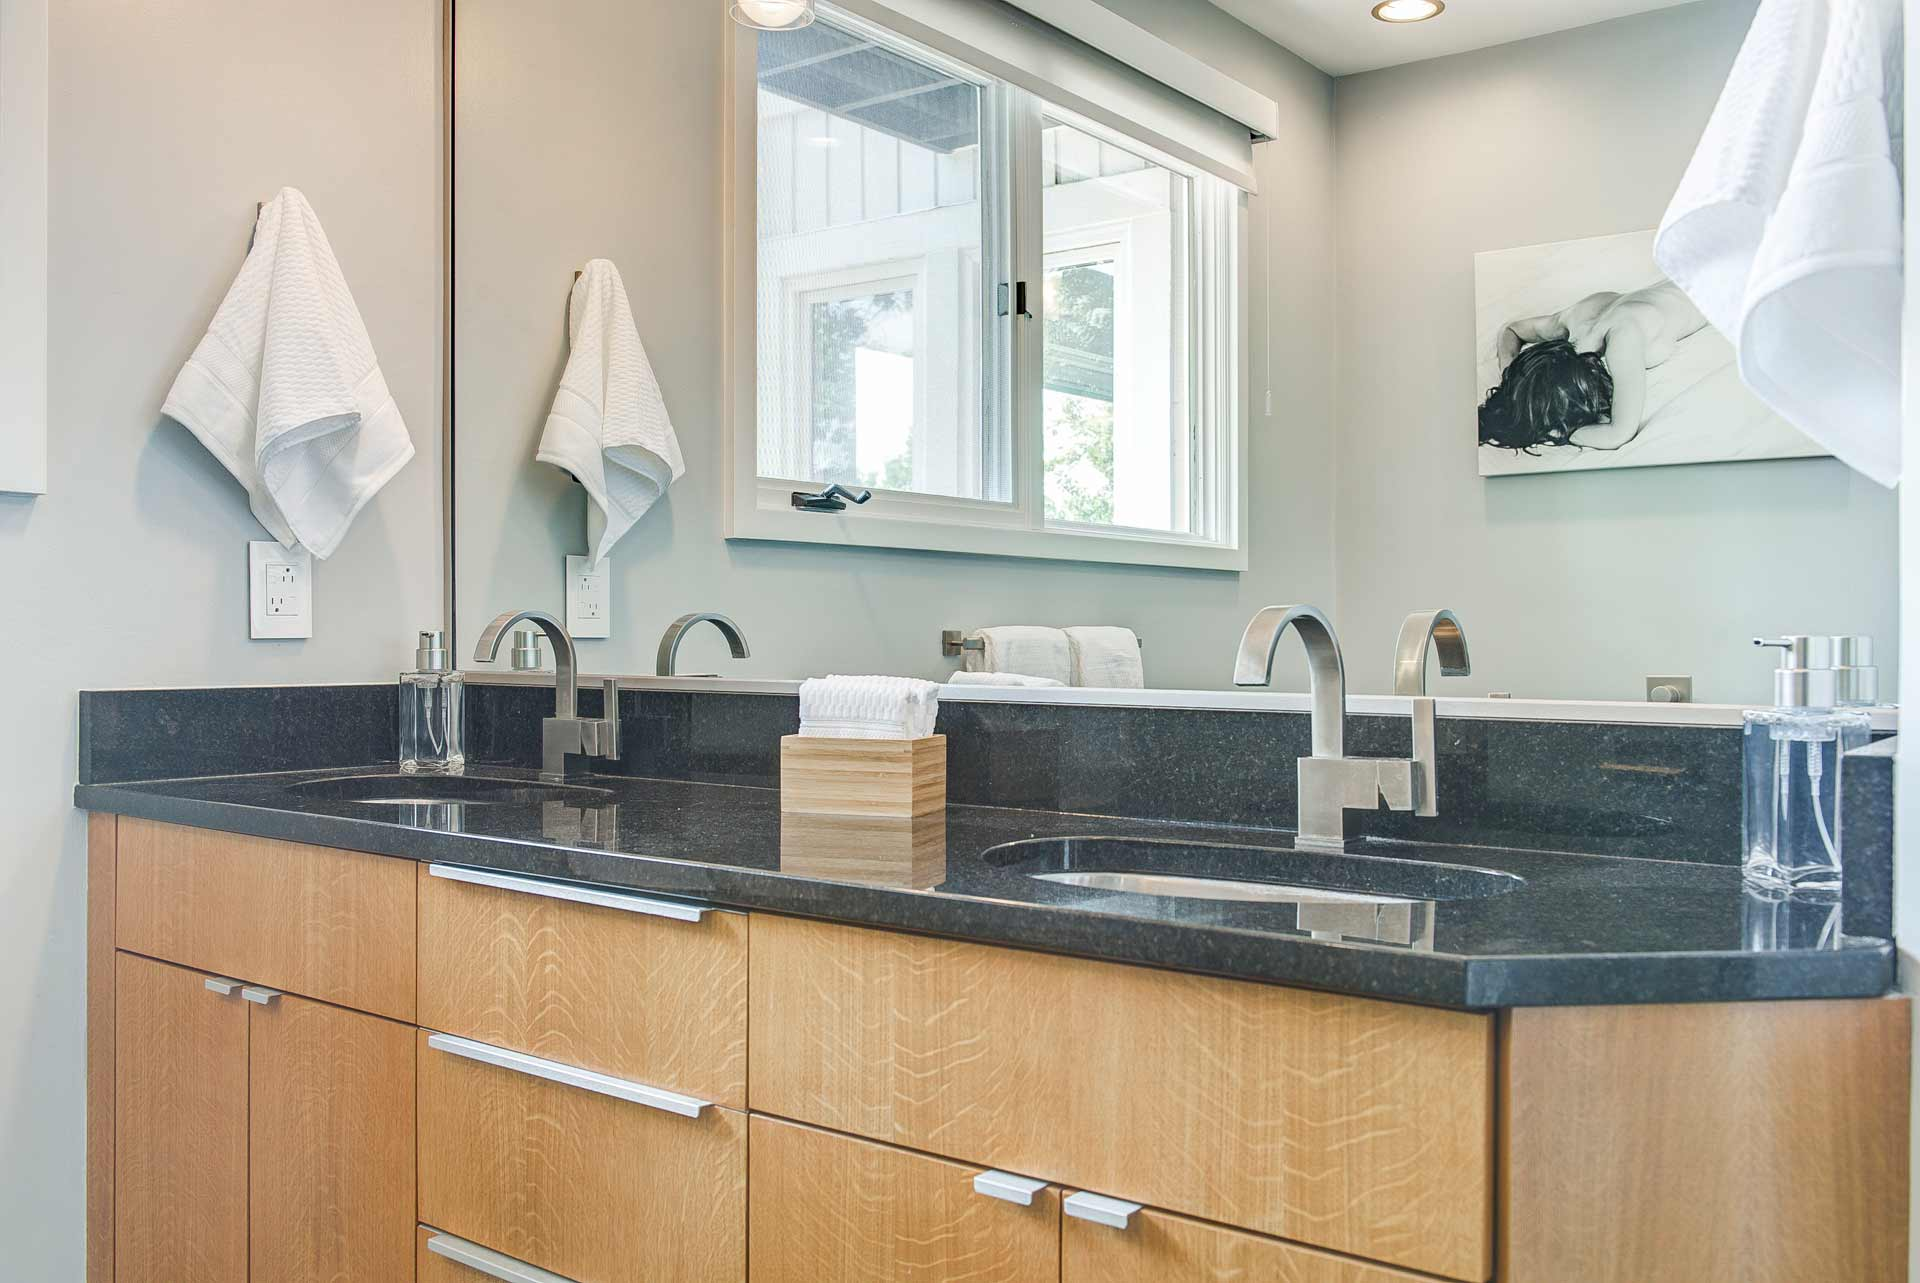 Master vanity details include black quartz top and blonde wood vanity - Reef Court Light Renovation - Geist Reservoir - Indianapolis, IN - Photo by Structured Photography